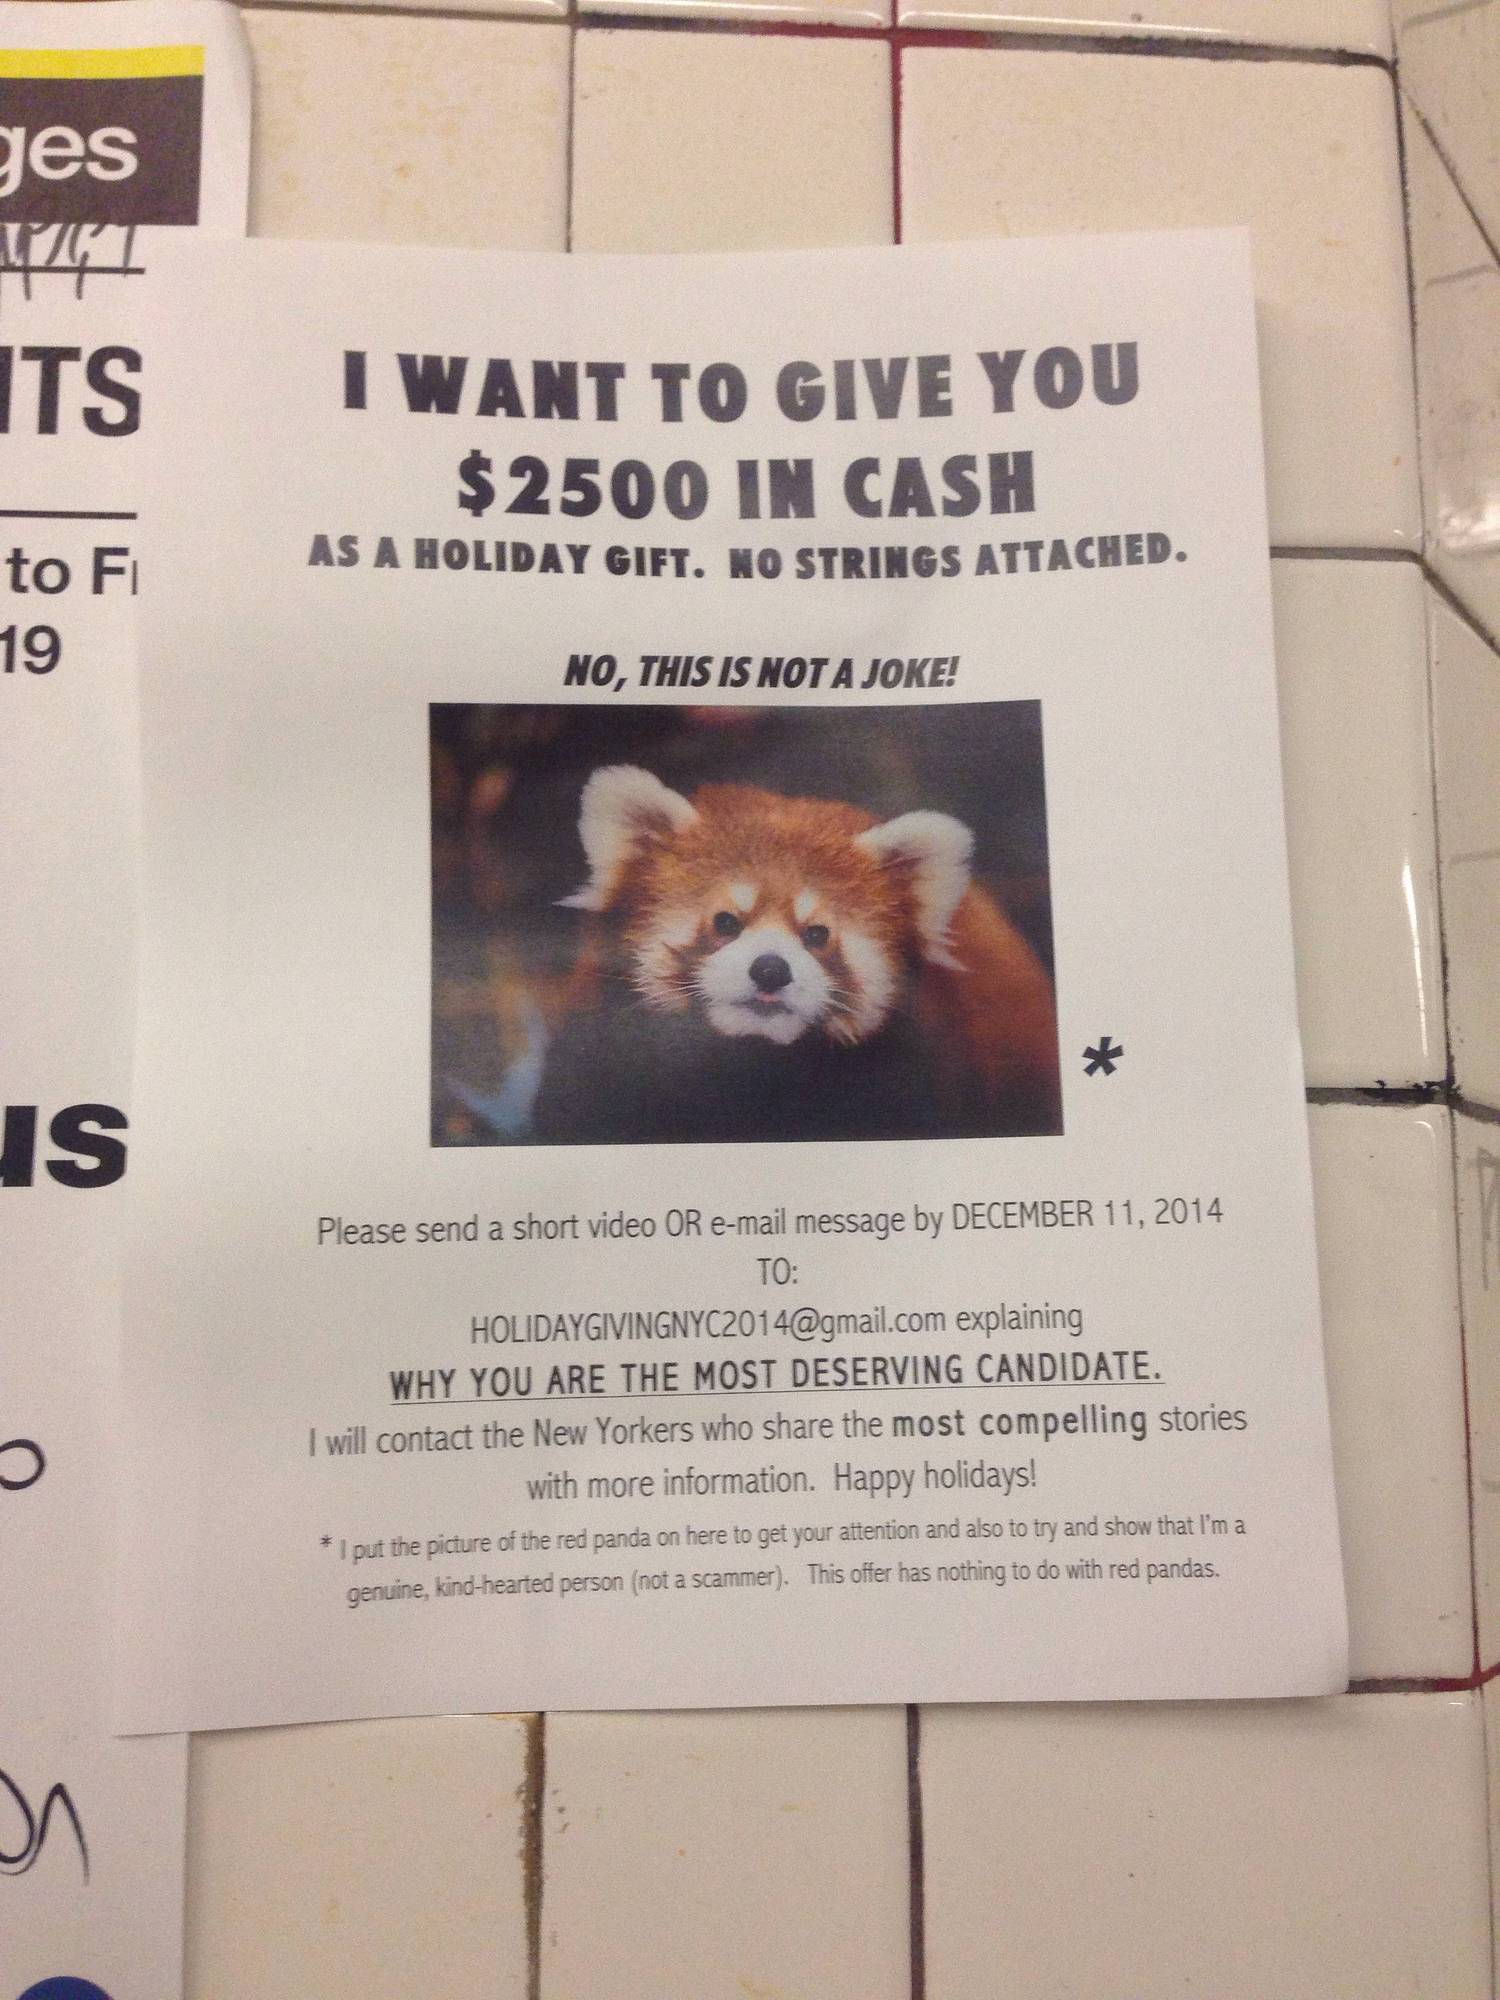 I WANT TO GIVE YOU $2500 IN CASH